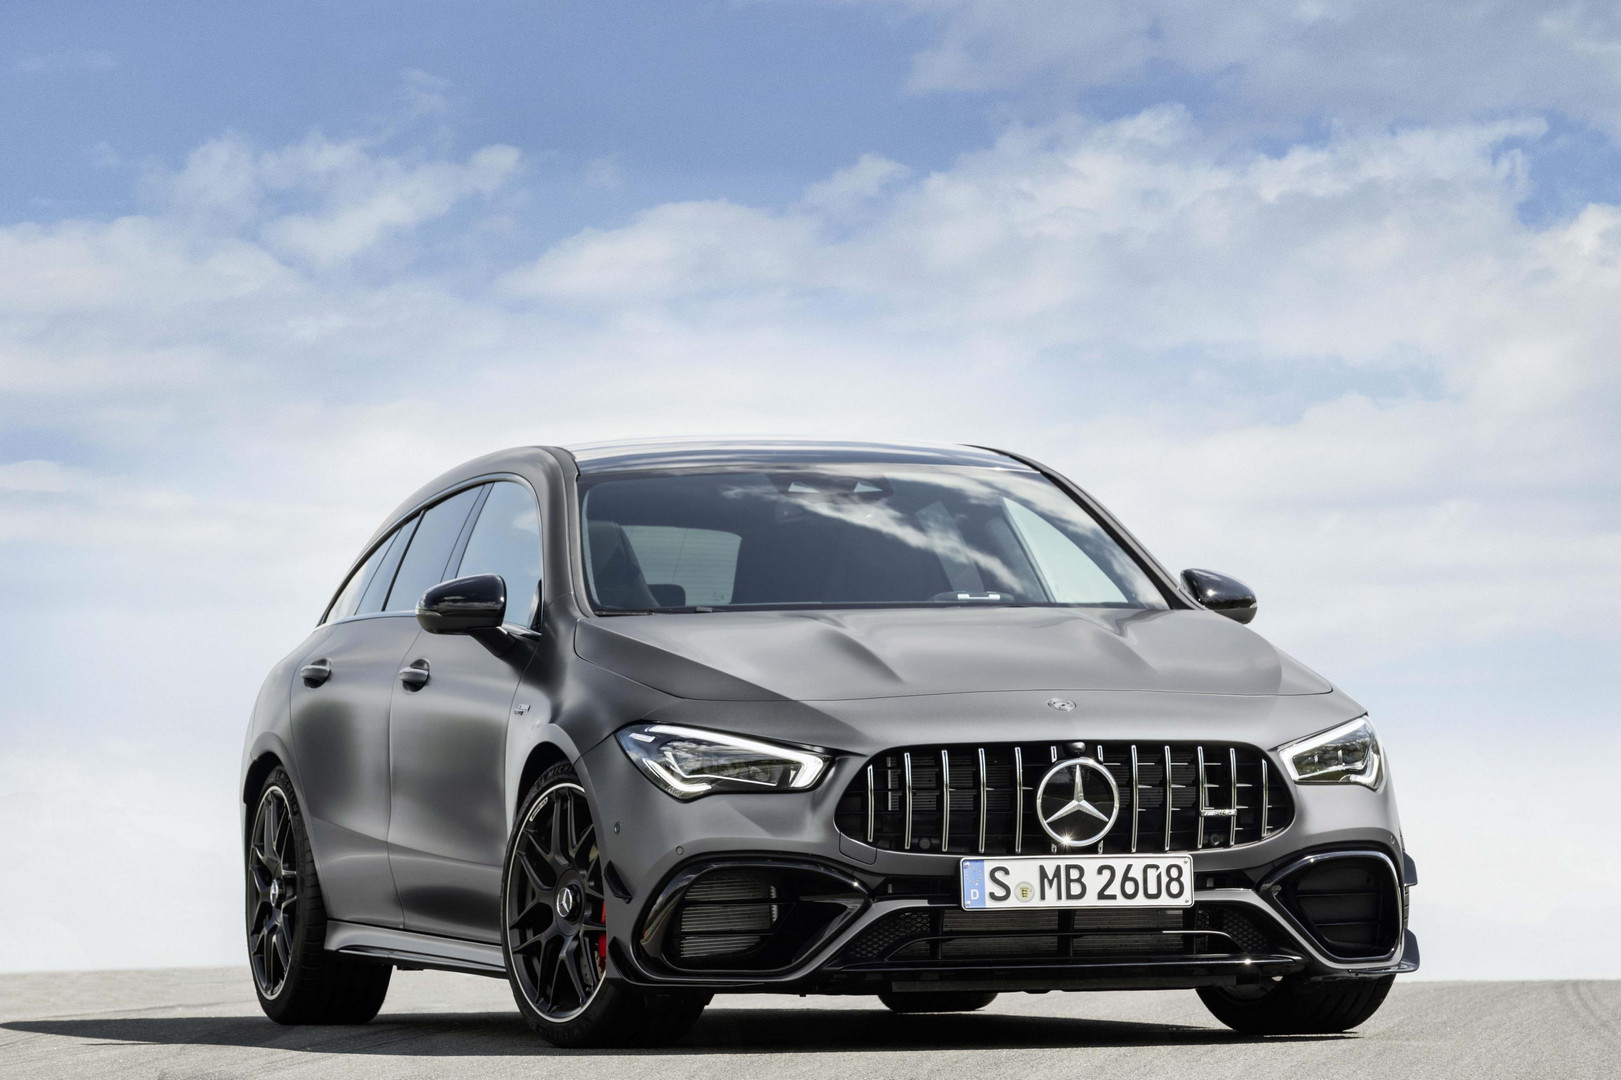 Mercedes-AMG CLA 45 S Shooting Brake